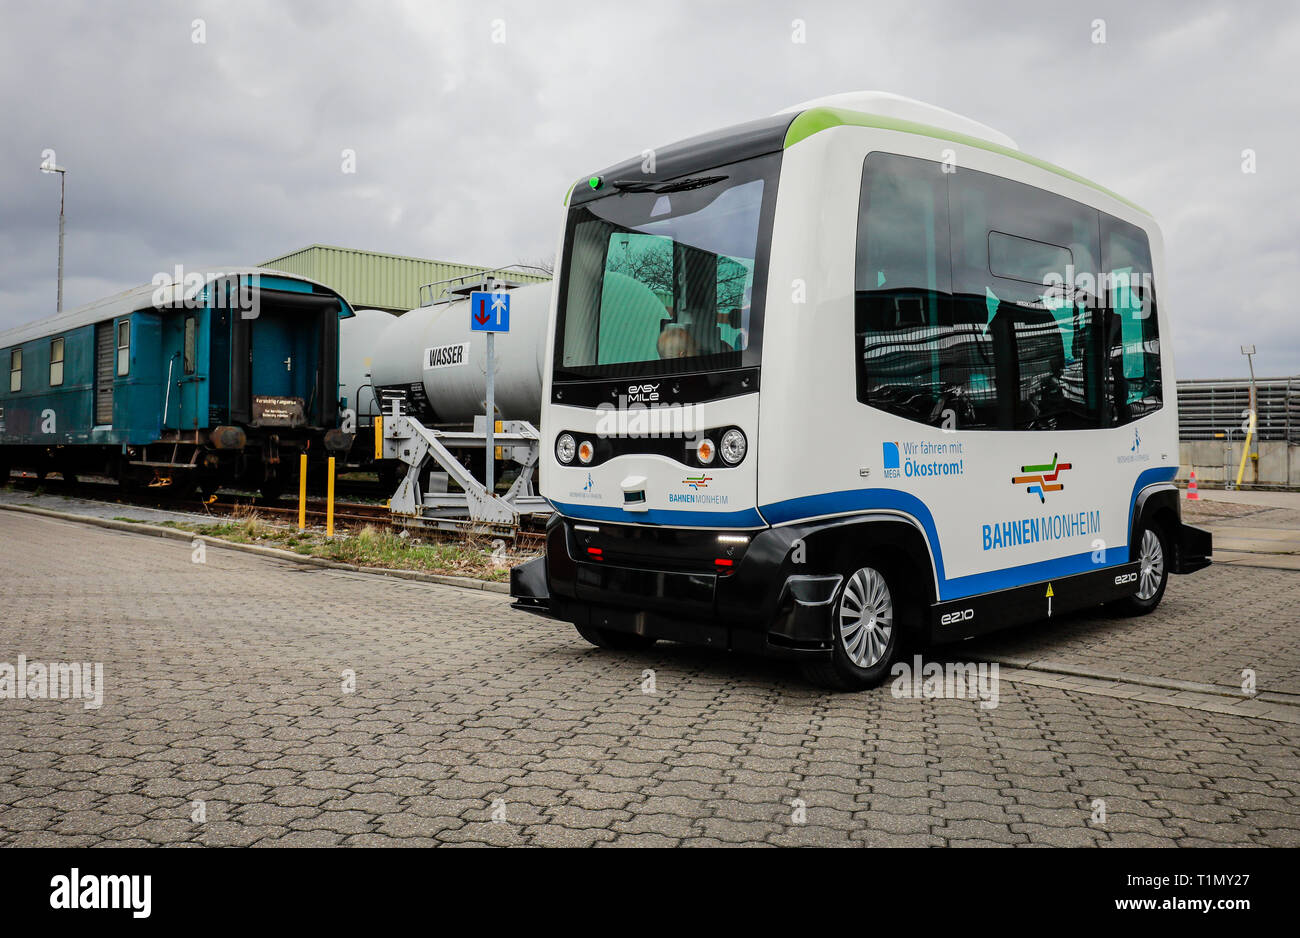 Monheim, North Rhine-Westphalia, Germany - Presentation of the autonomous electric bus in regular service, model EZ10 of the company Easymile, at the  Stock Photo